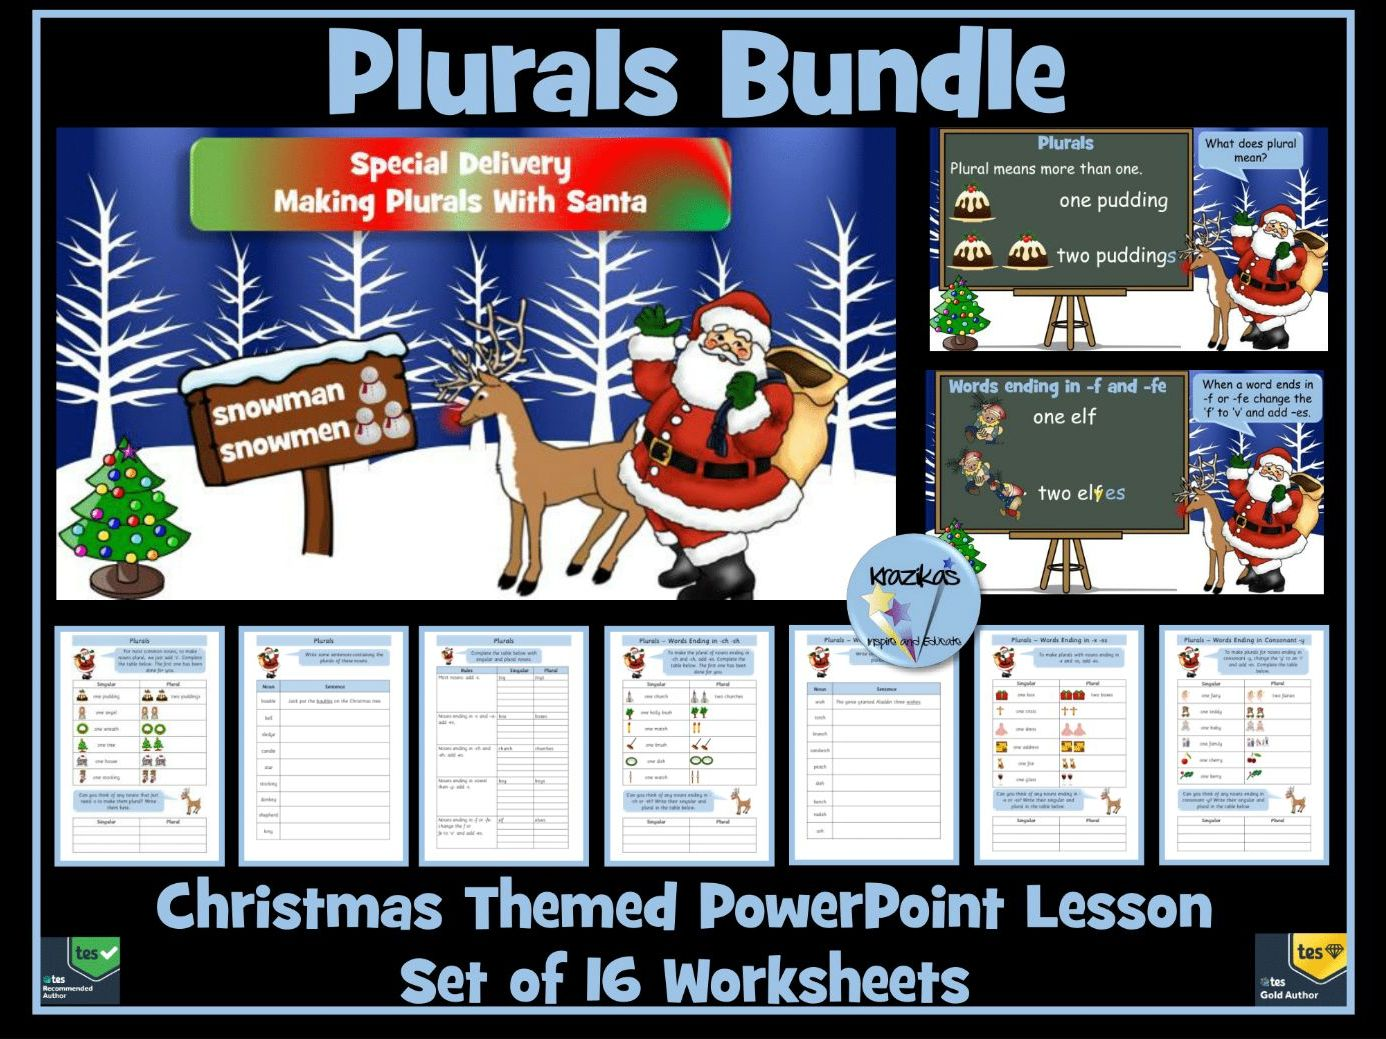 Plurals Bundle - Christmas Themed